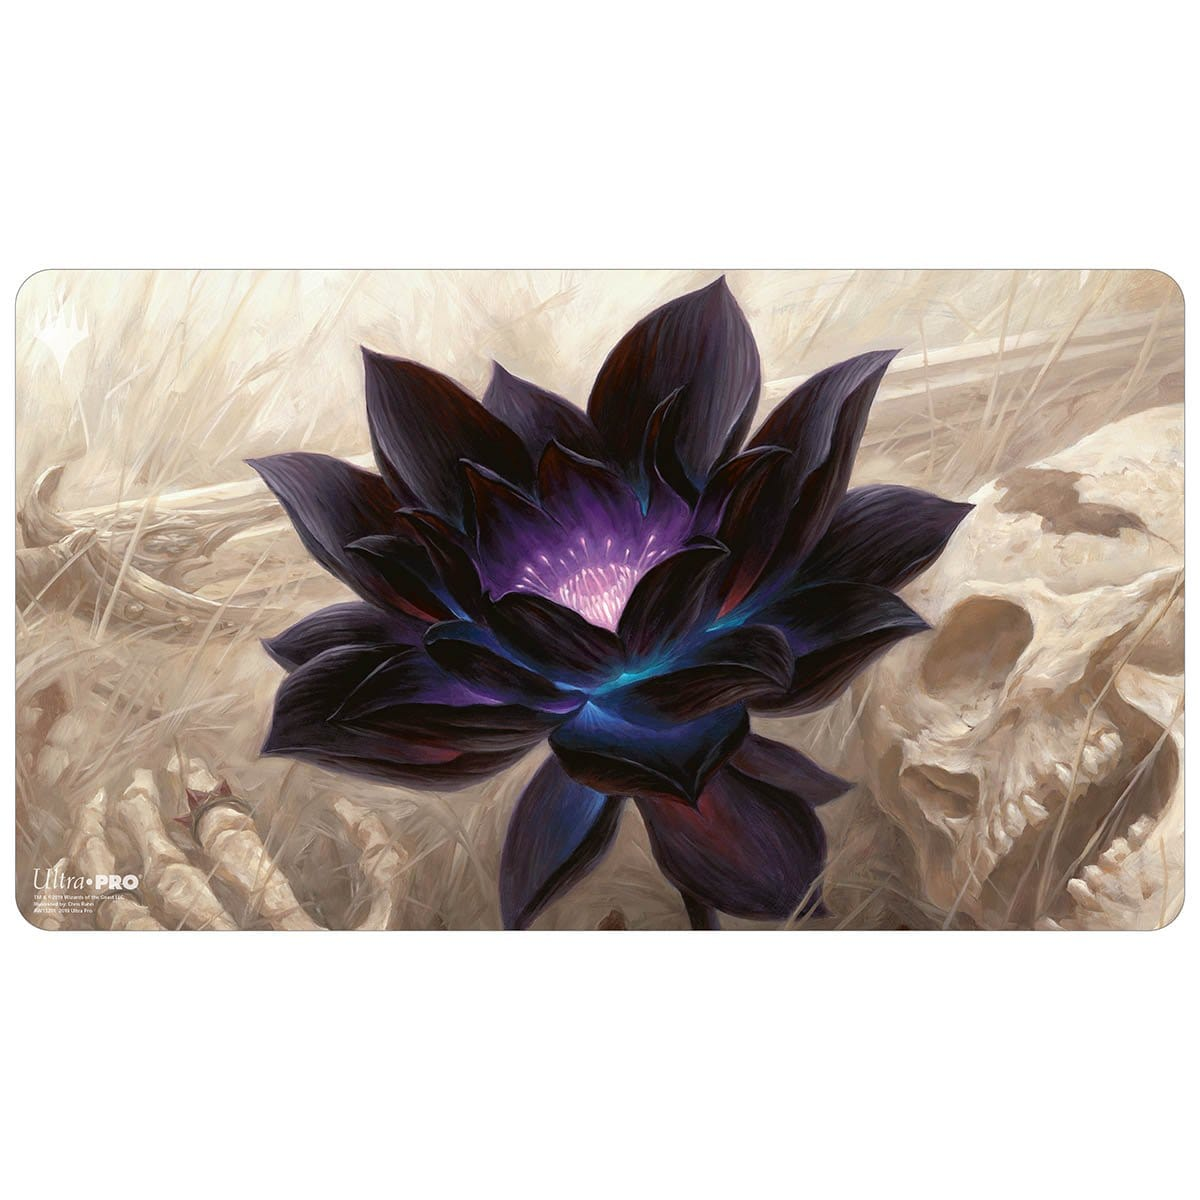 Black Lotus Playmat - Playmat - Original Magic Art - Accessories for Magic the Gathering and other card games